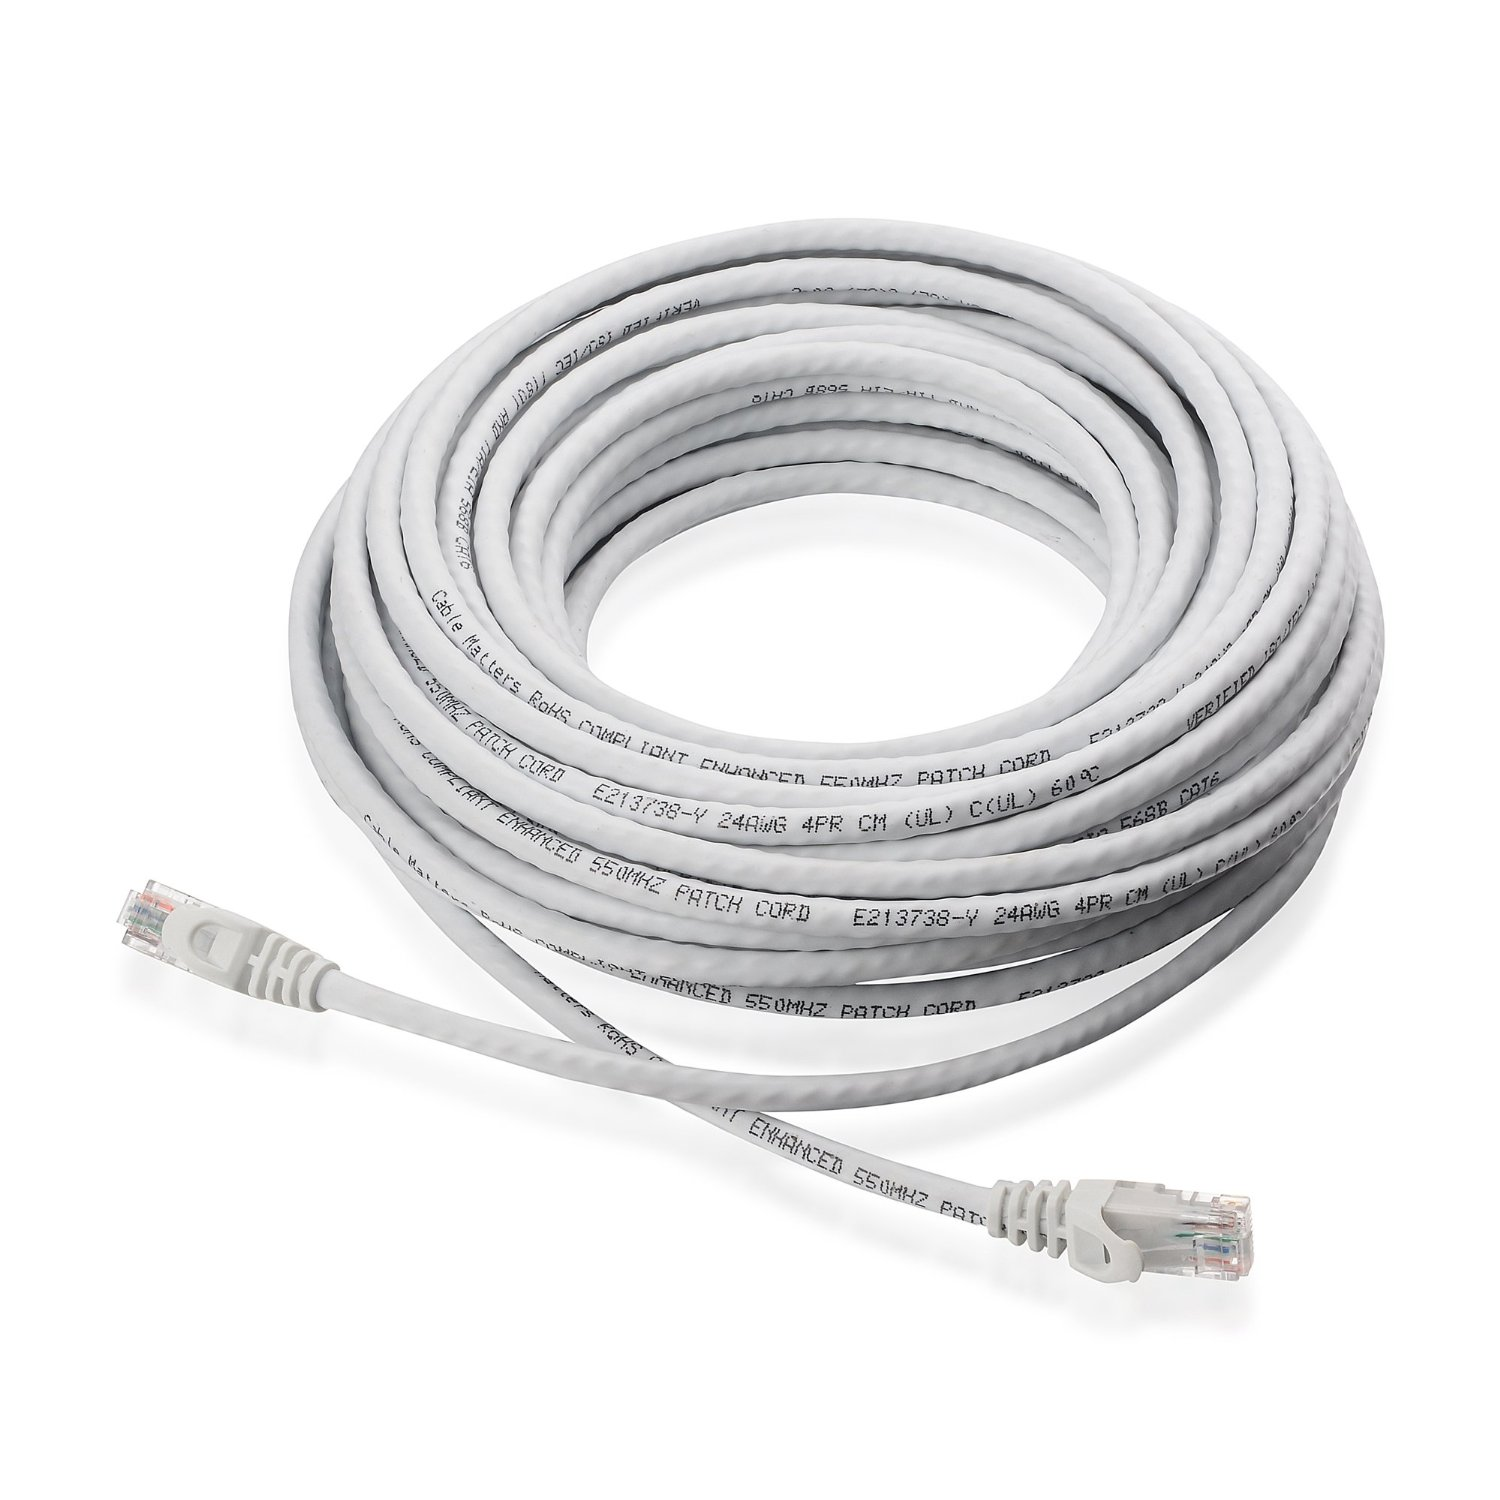 Cat6 Ethernet Cable White Adamlouis Data Wiring Small Business Accessories 1